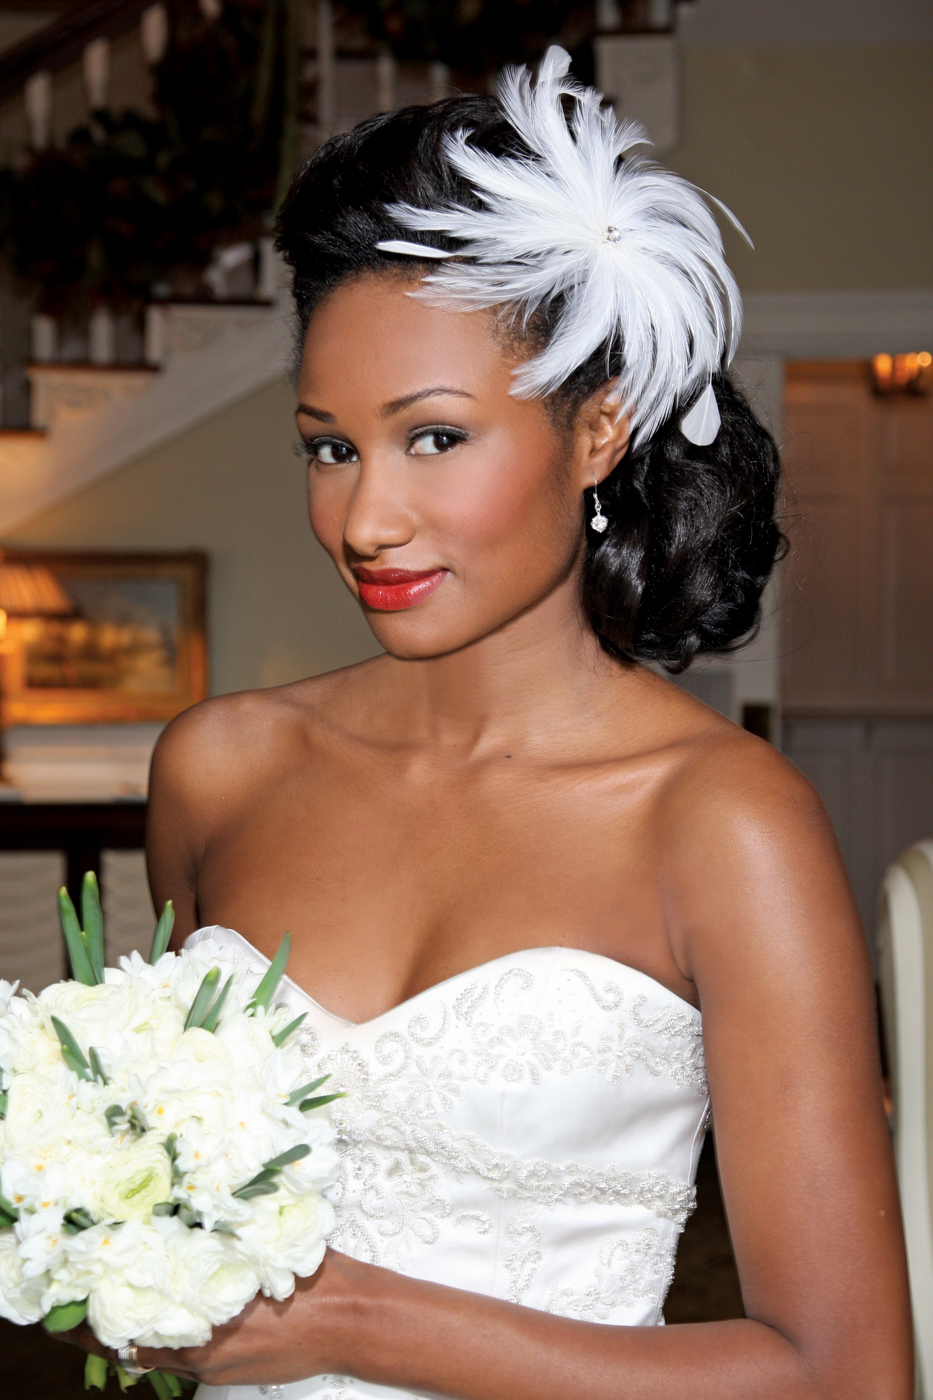 Wedding Hair And Makeup Tips From My Hair And Makeup